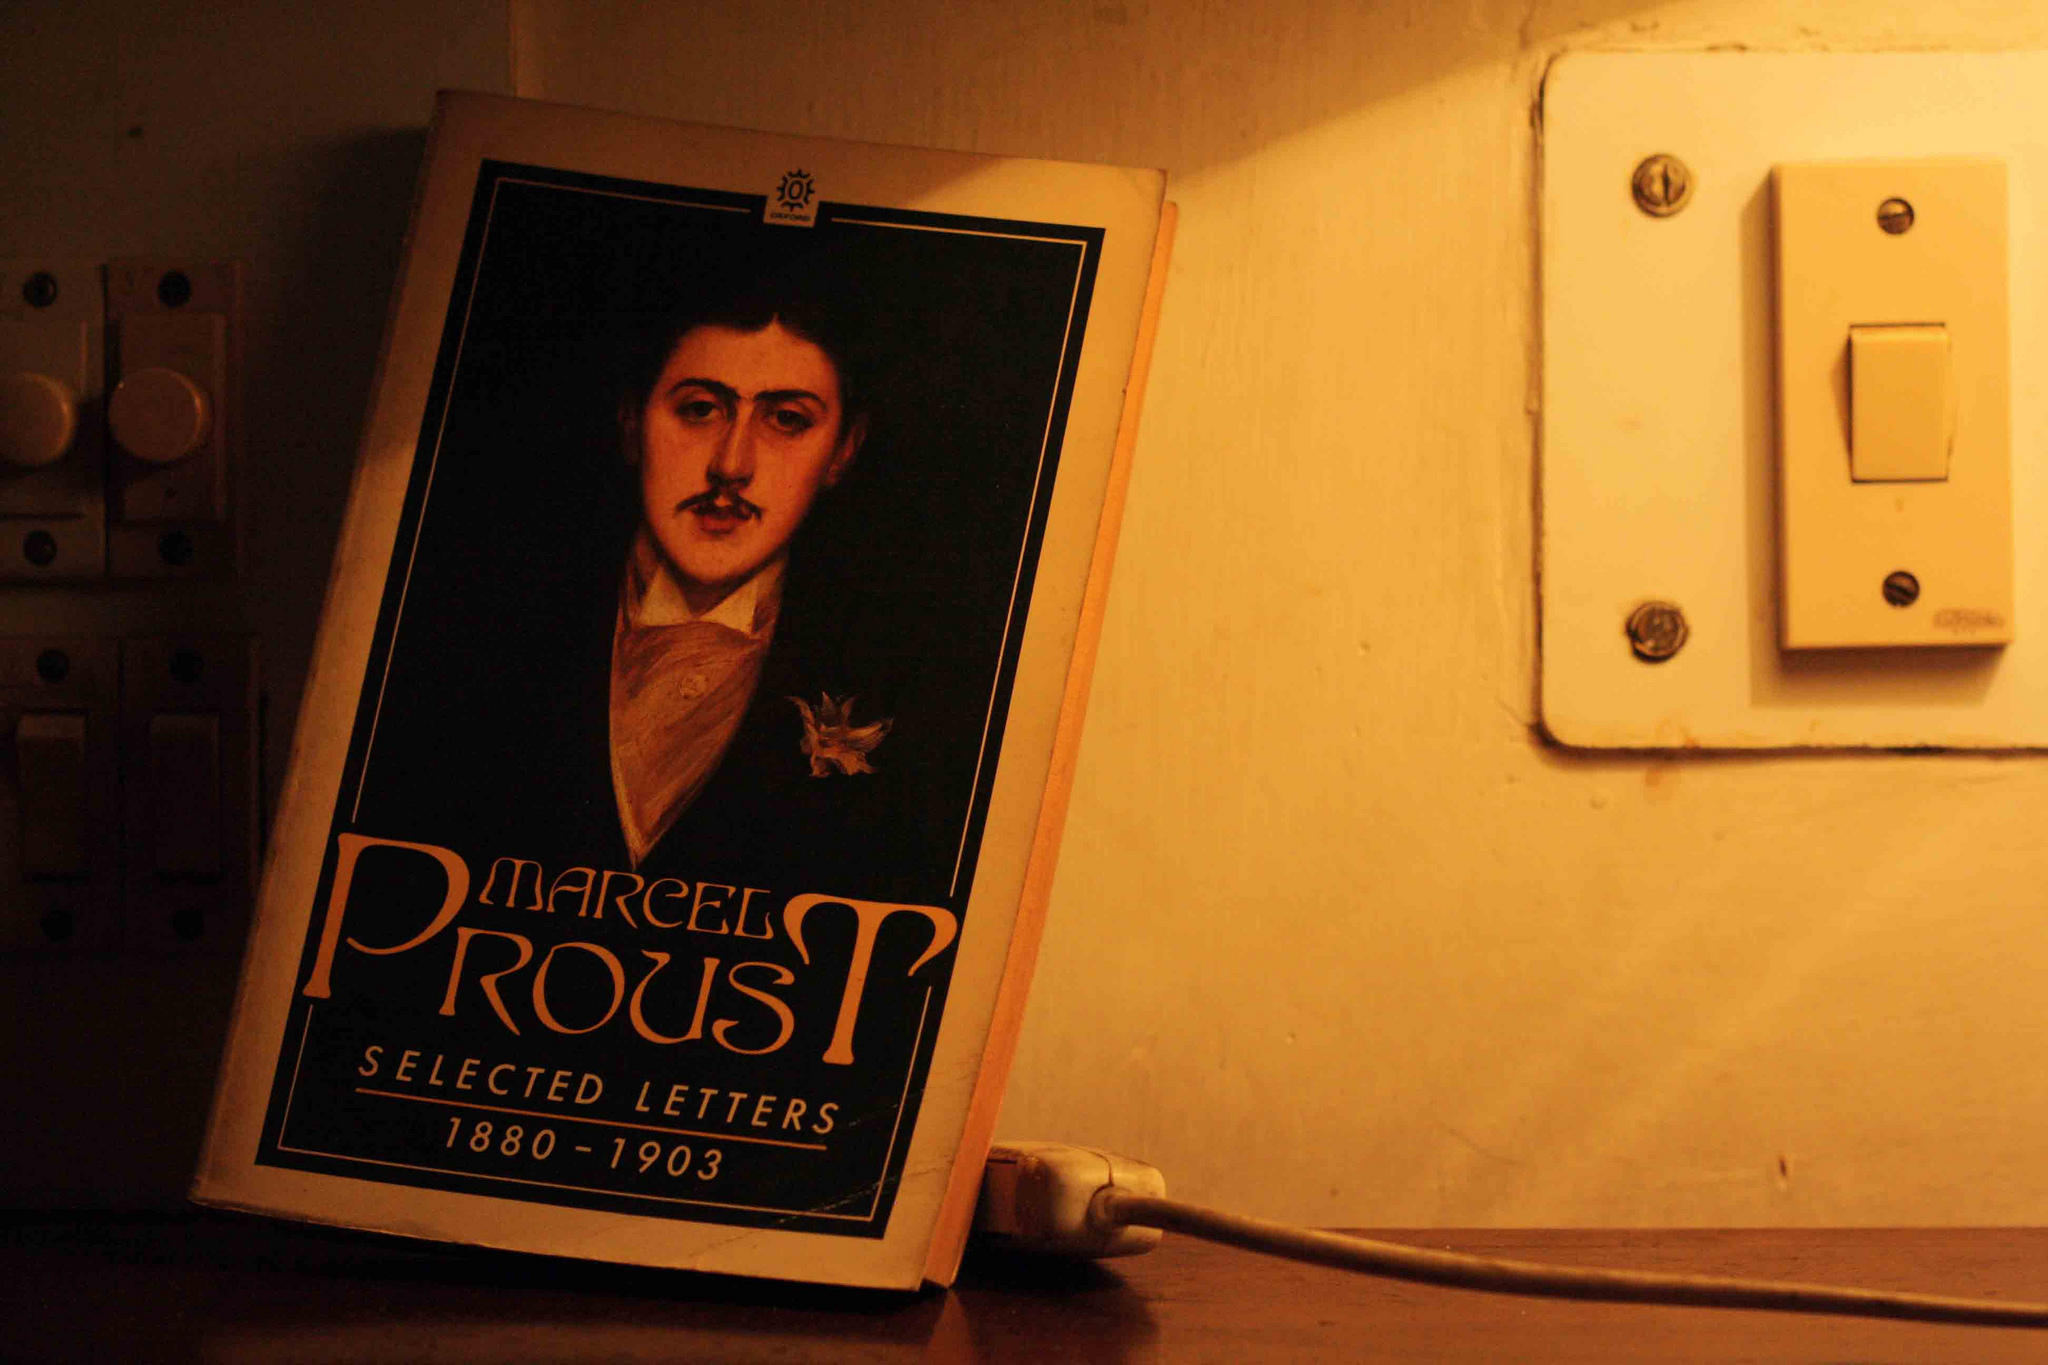 Delhi Proustians – 10 July, Marcel Proust's 143rd Birthday